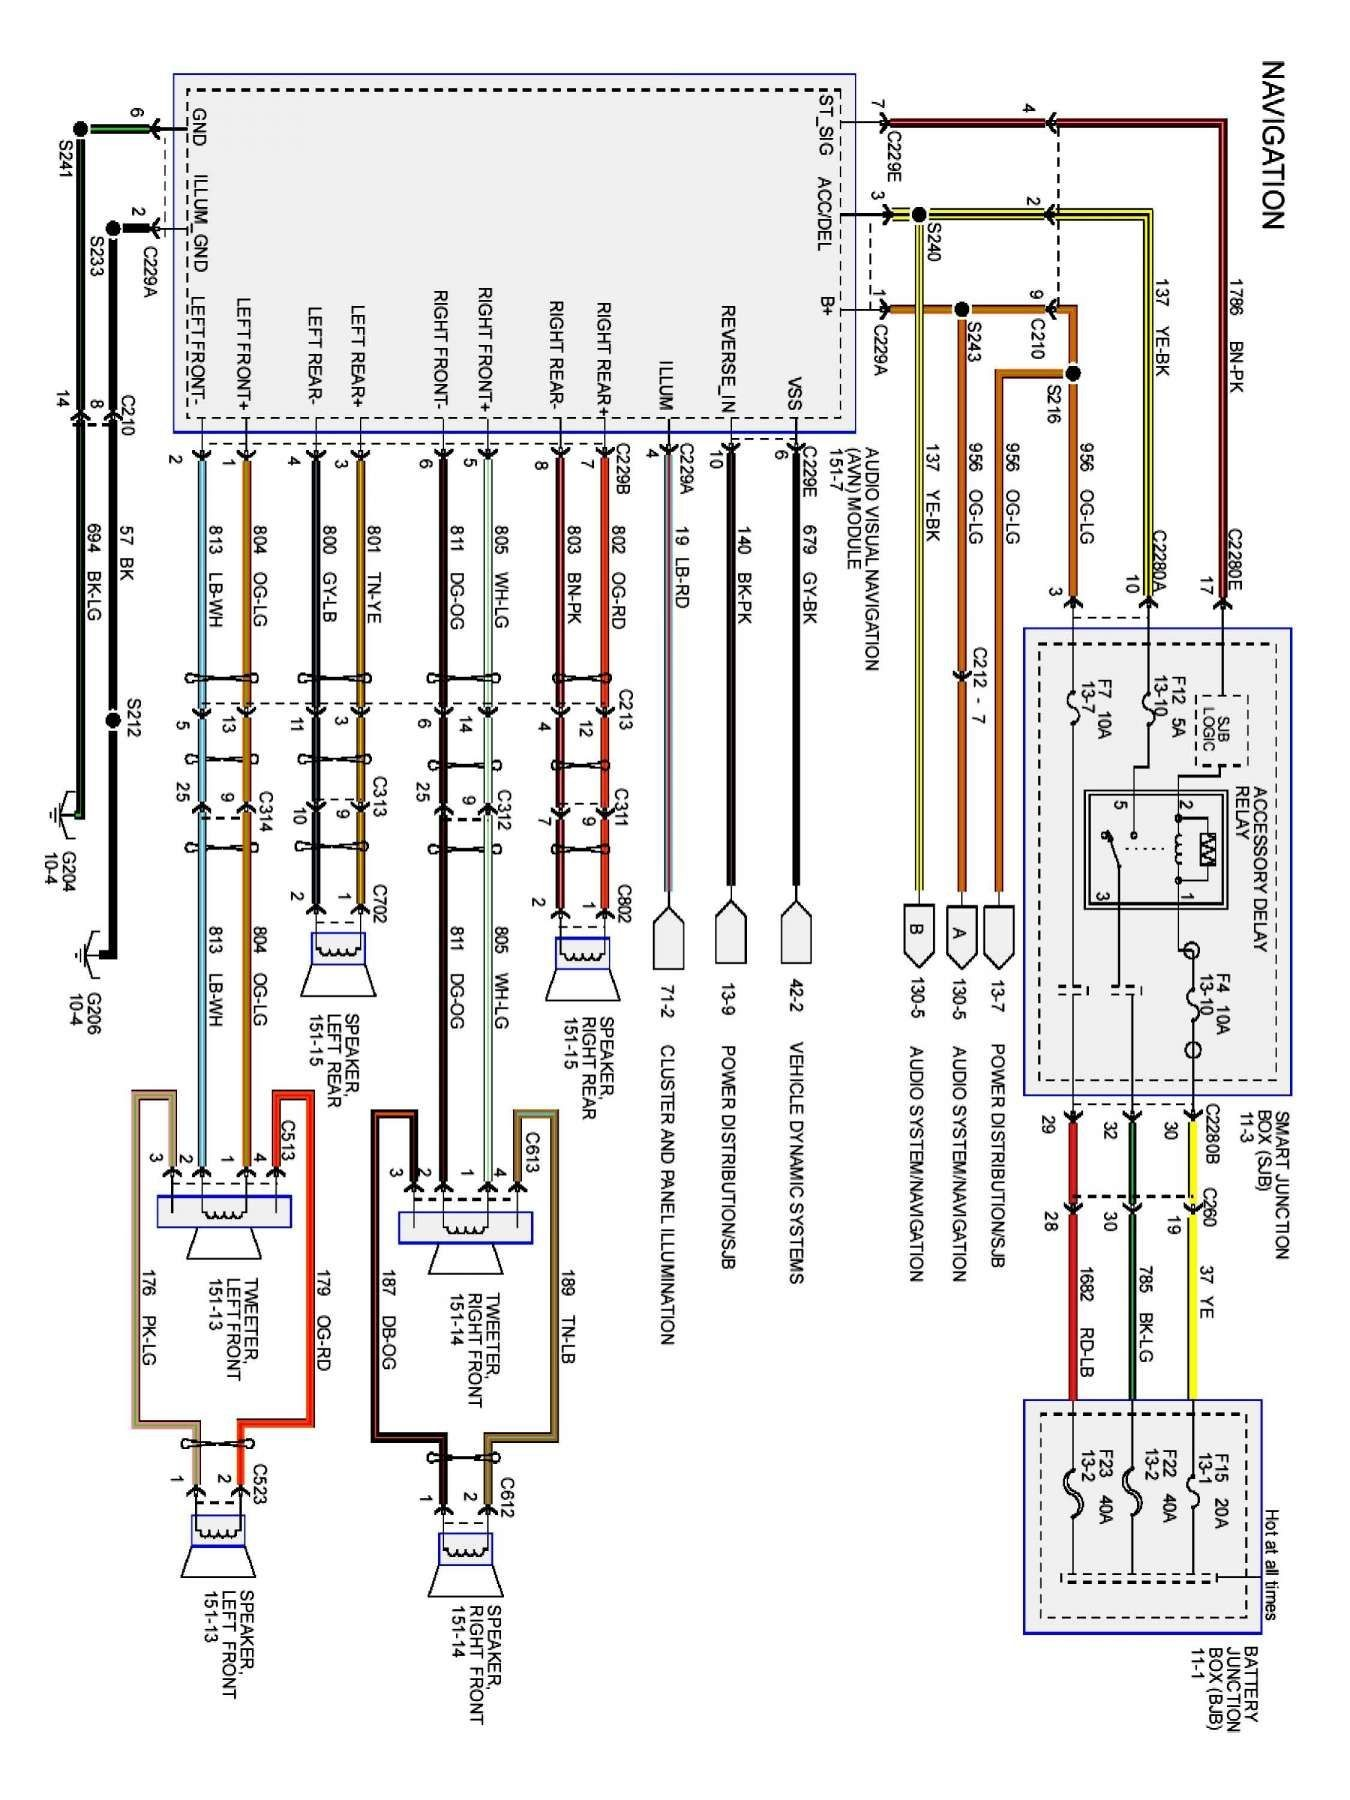 Daihatsu Fujitsu Ten Car Audio Wiring Diagram 918 Best Wiring Diagram Images In 2020 Of Daihatsu Fujitsu Ten Car Audio Wiring Diagram